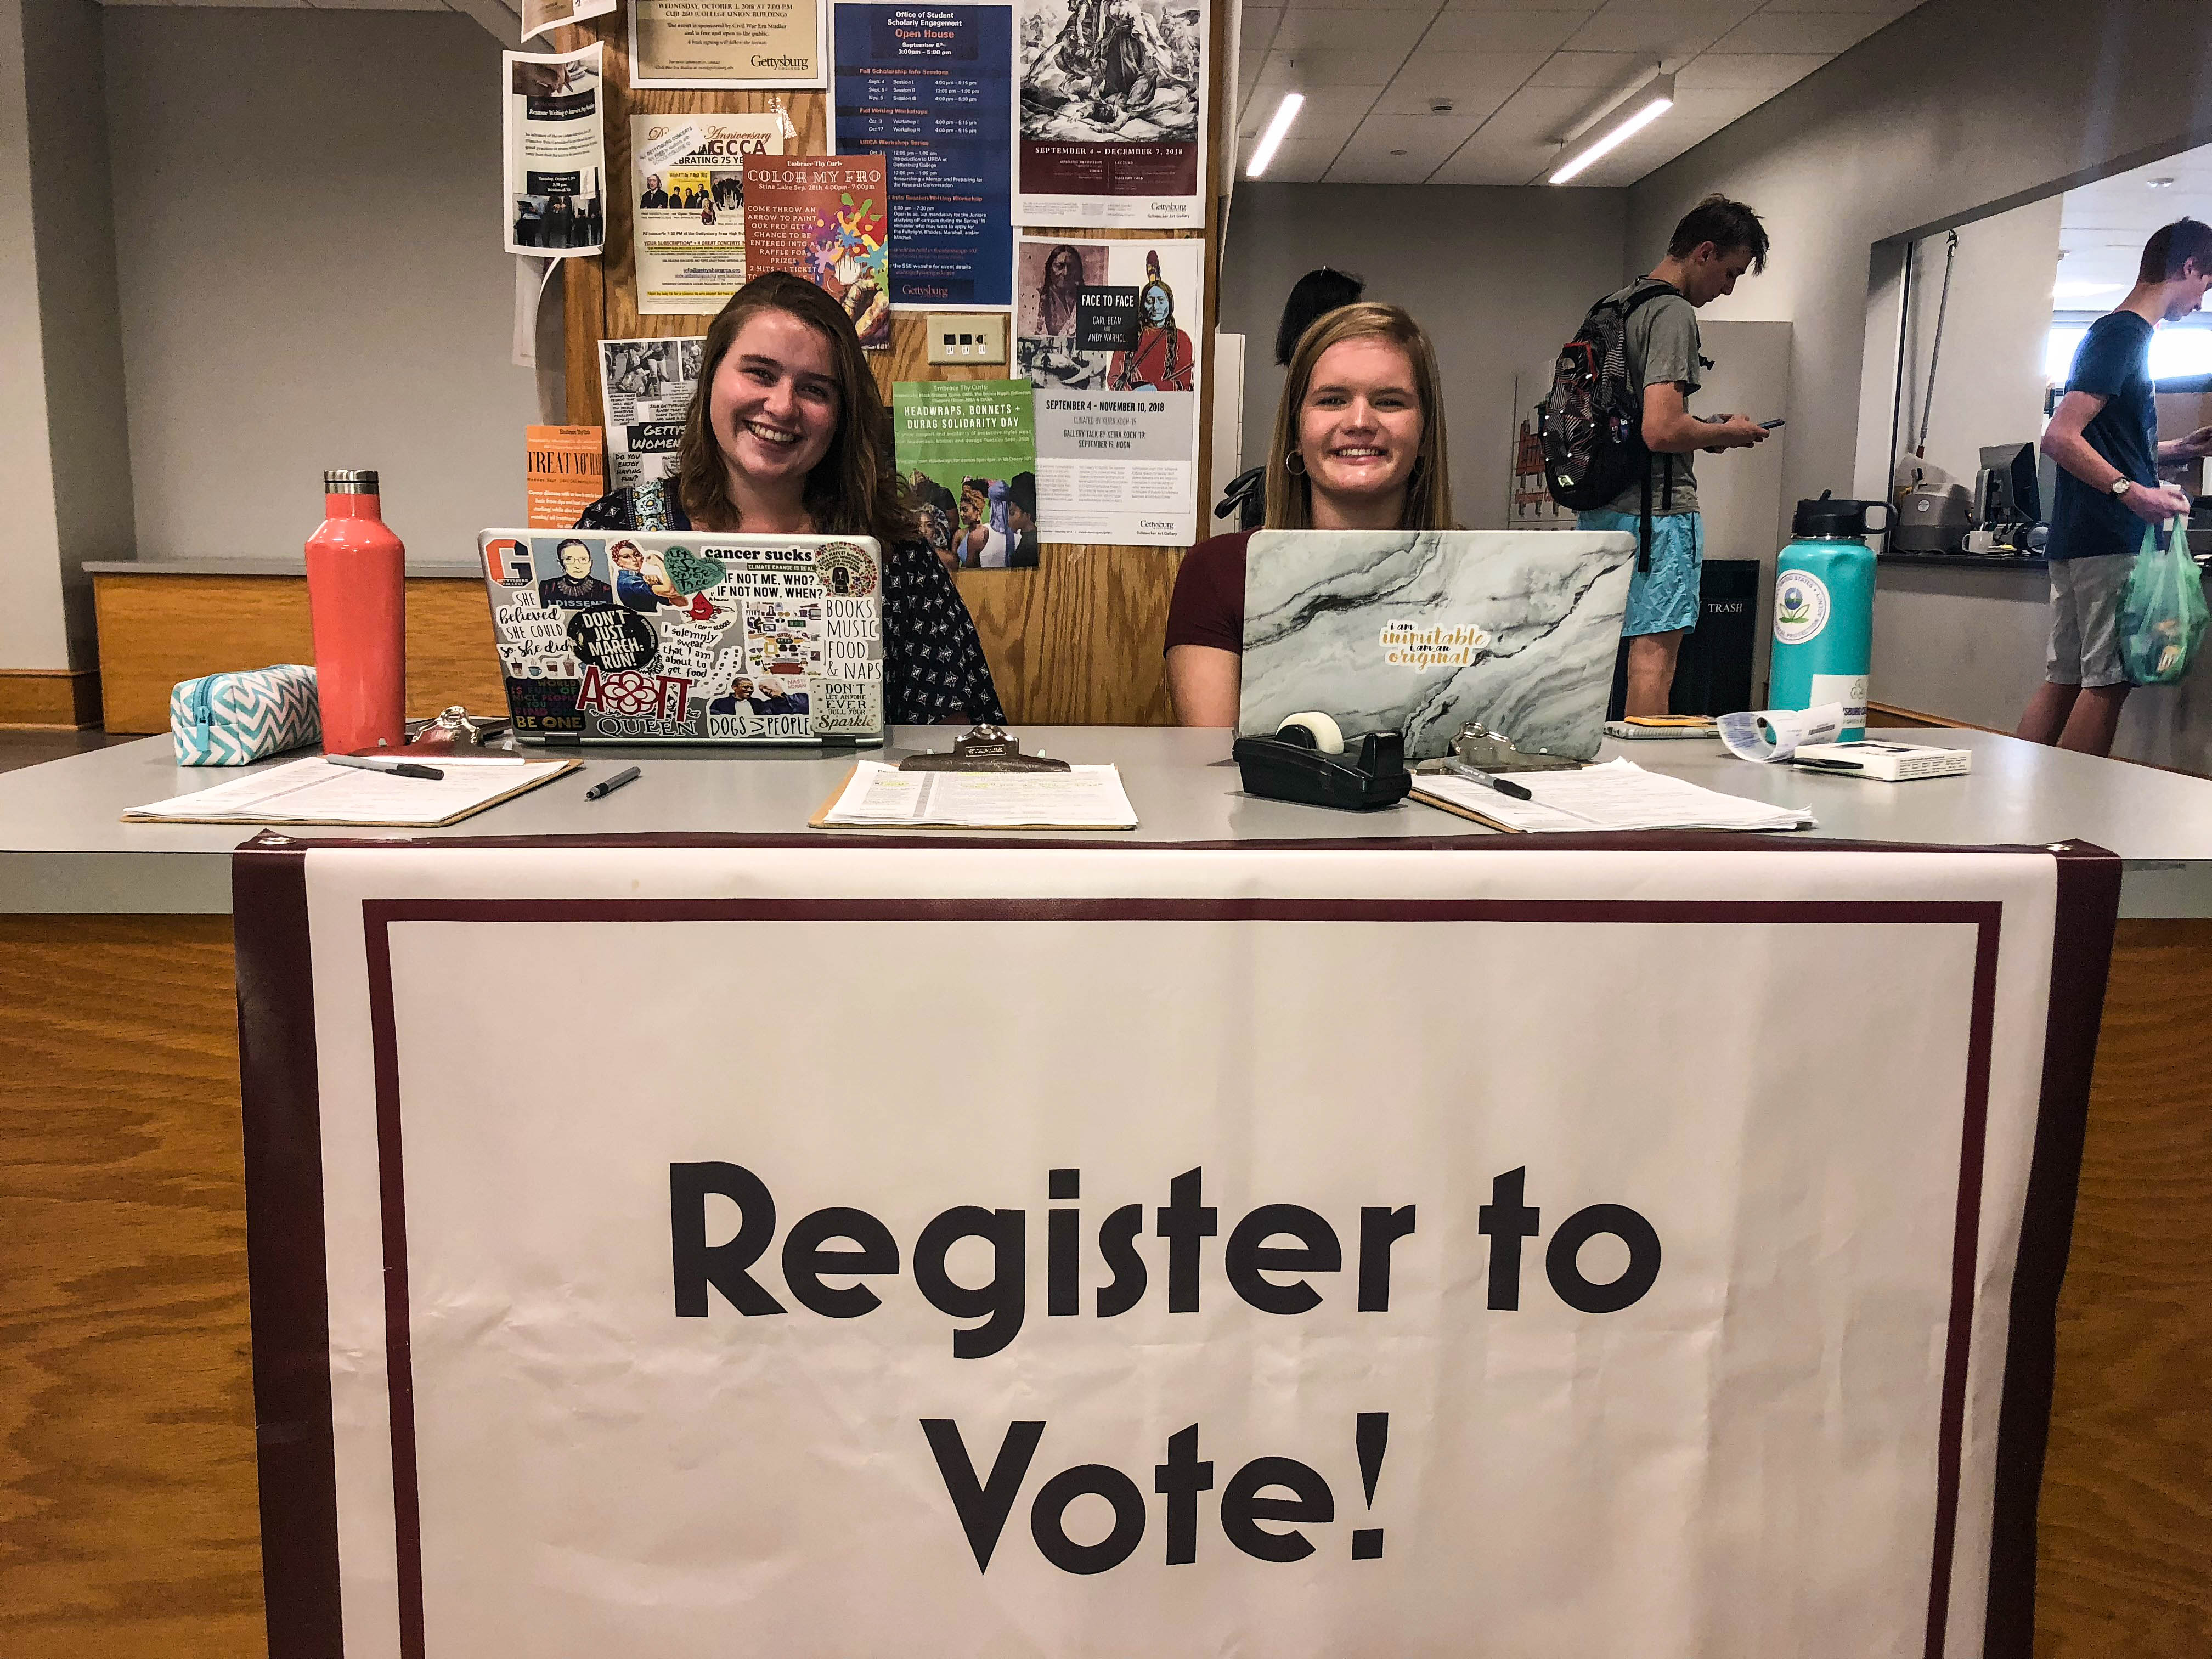 As the Midterm Elections approach, student groups have been encouraging students to vote on Tuesday, November 6 (Photo Gabi Eglinton/The Gettysburgian)